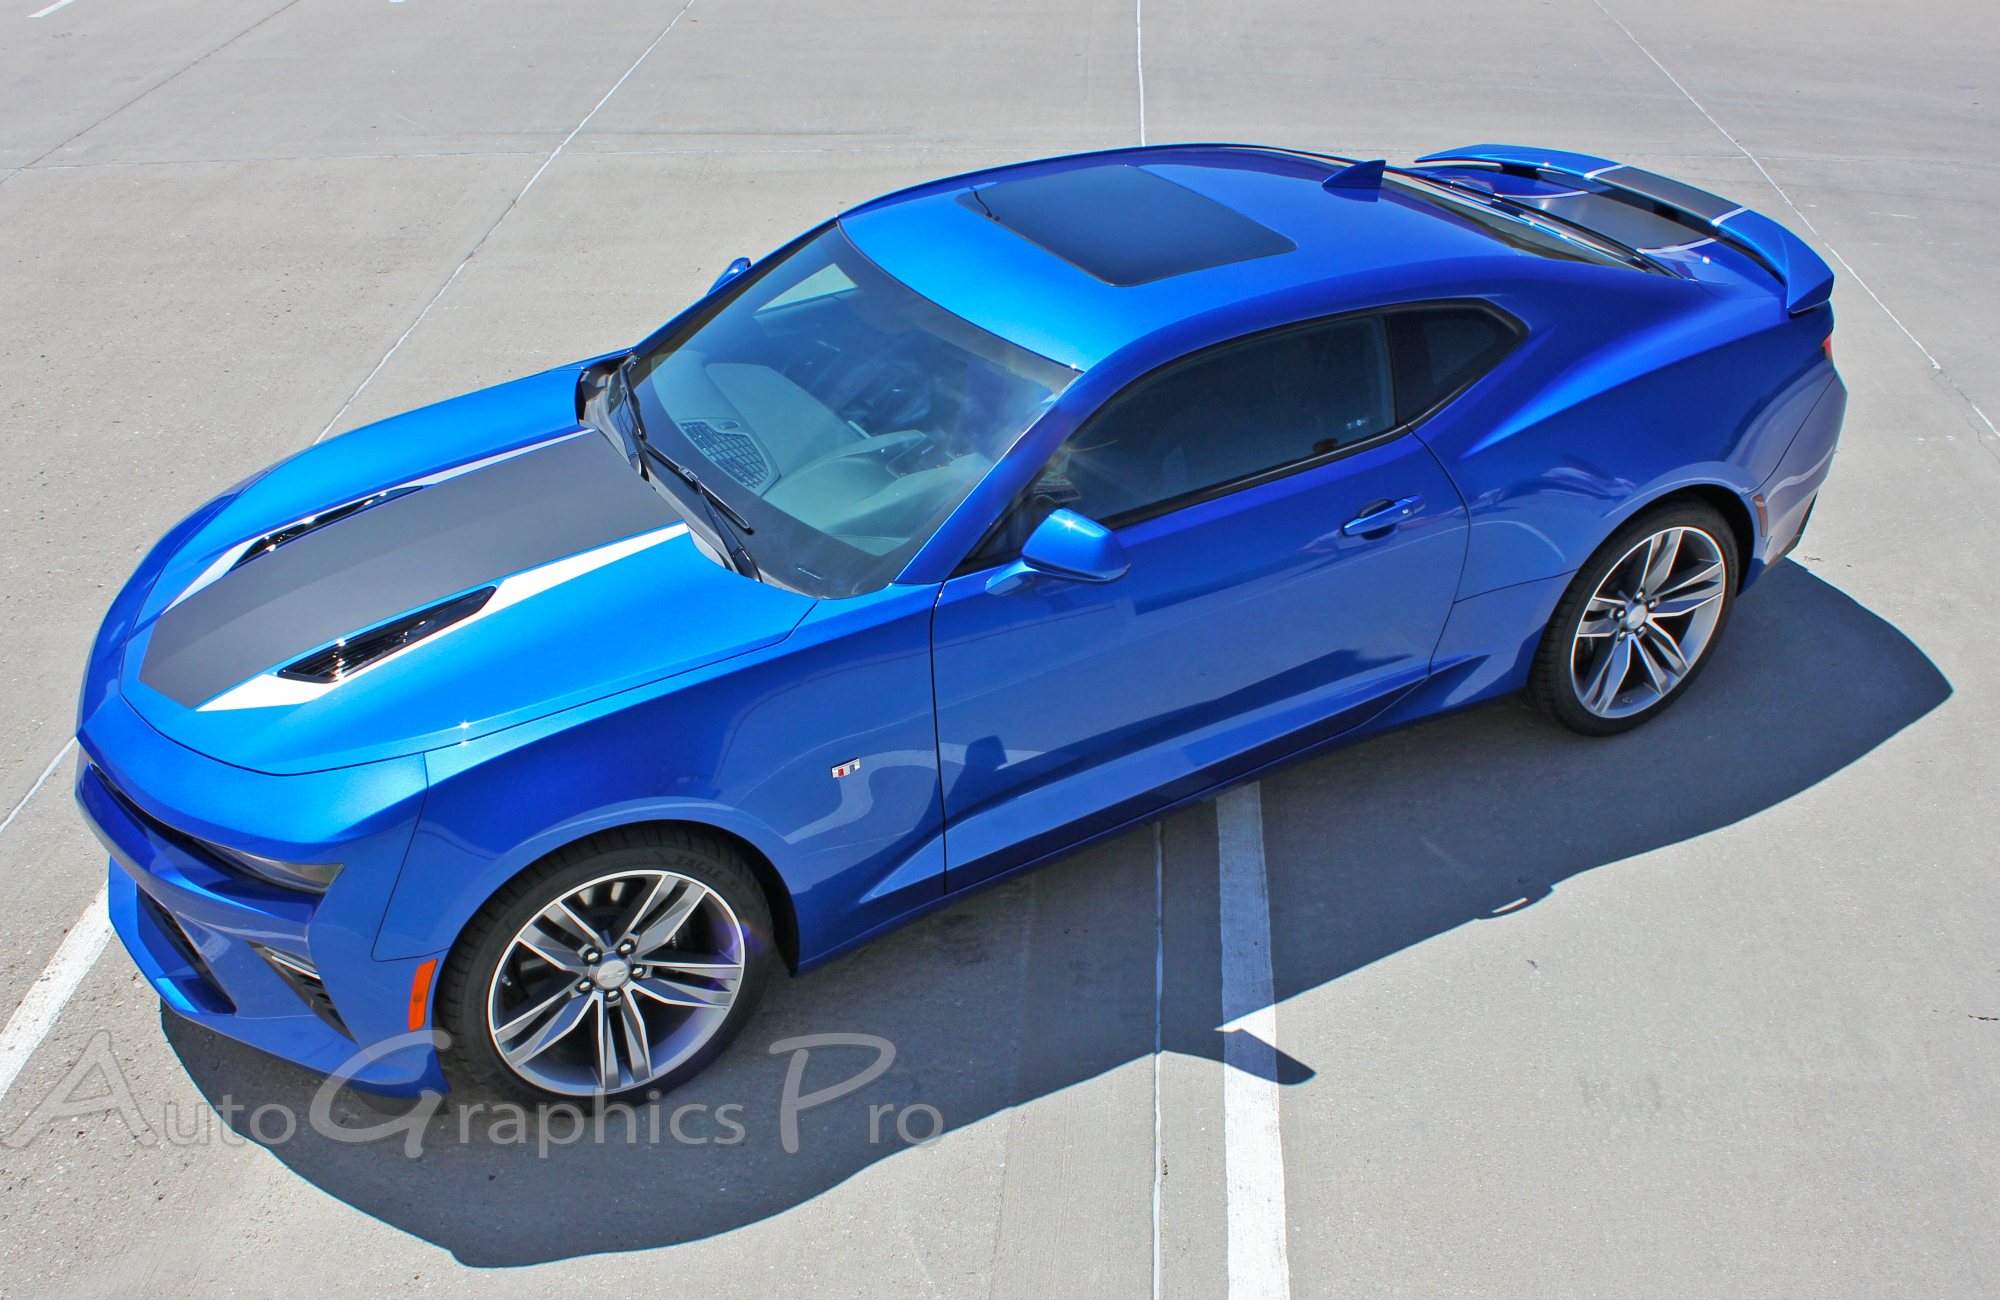 2017 Camaro 50th Anniversary >> 2016 2017 2018 Chevy Camaro Graphics Heritage 50th Anniversary Hood Decals Accent Trunk Spoiler Indy 500 Racing Stripes Kit Fits Ss Rs V6 All